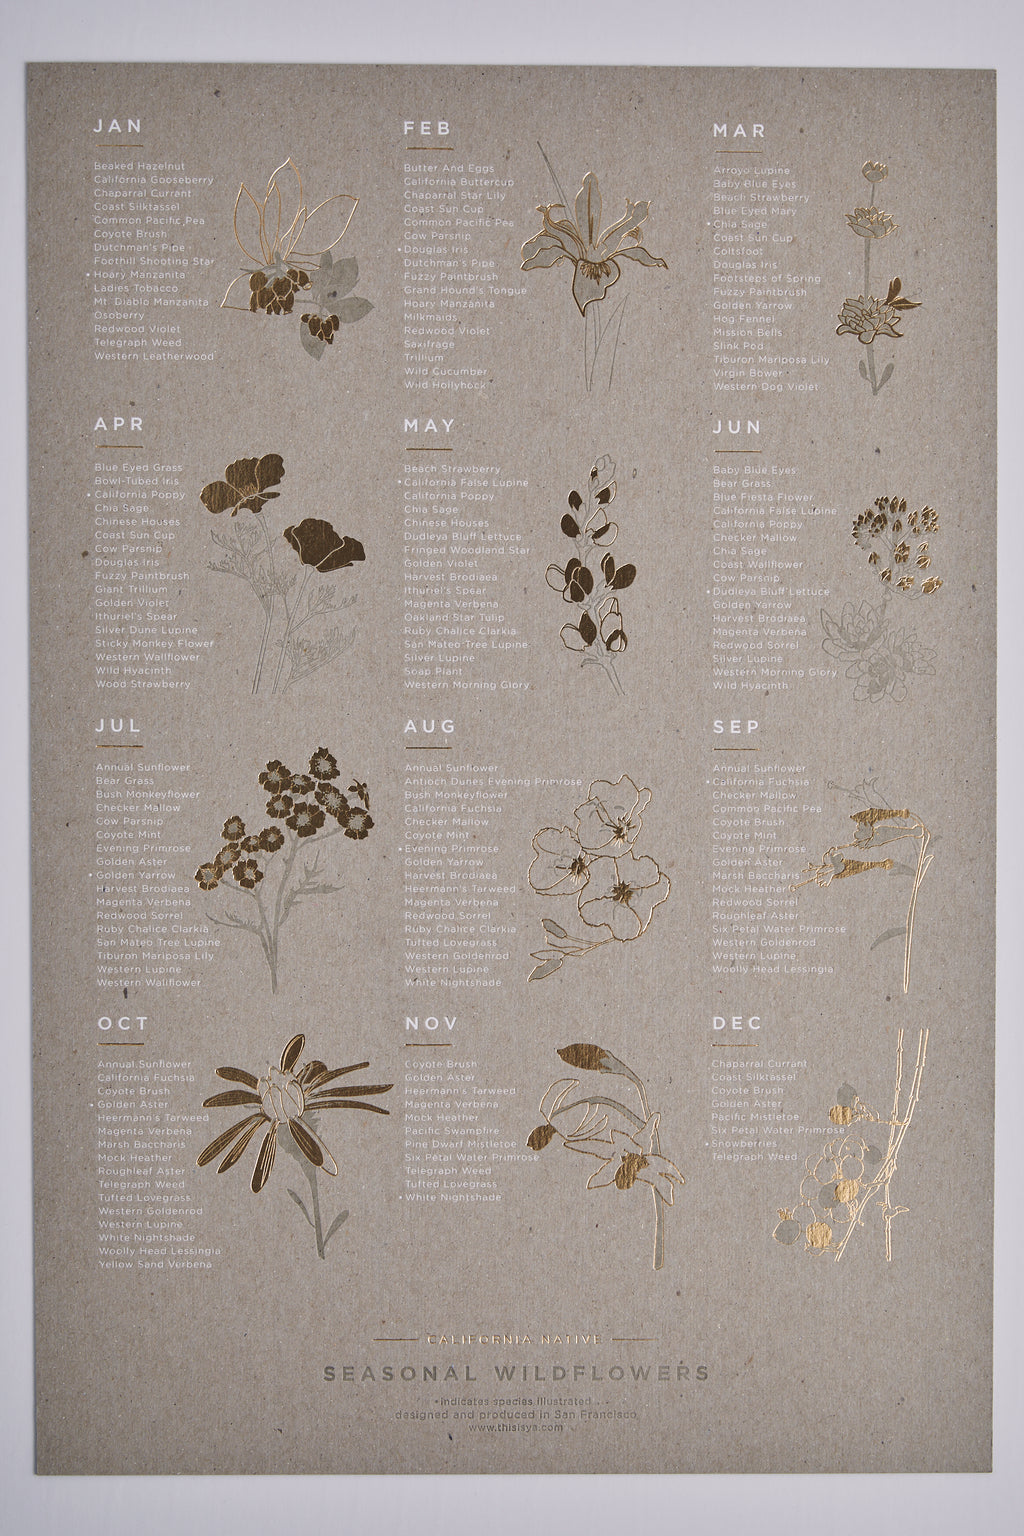 Seasonal Wildflower Poster - picnic-sf